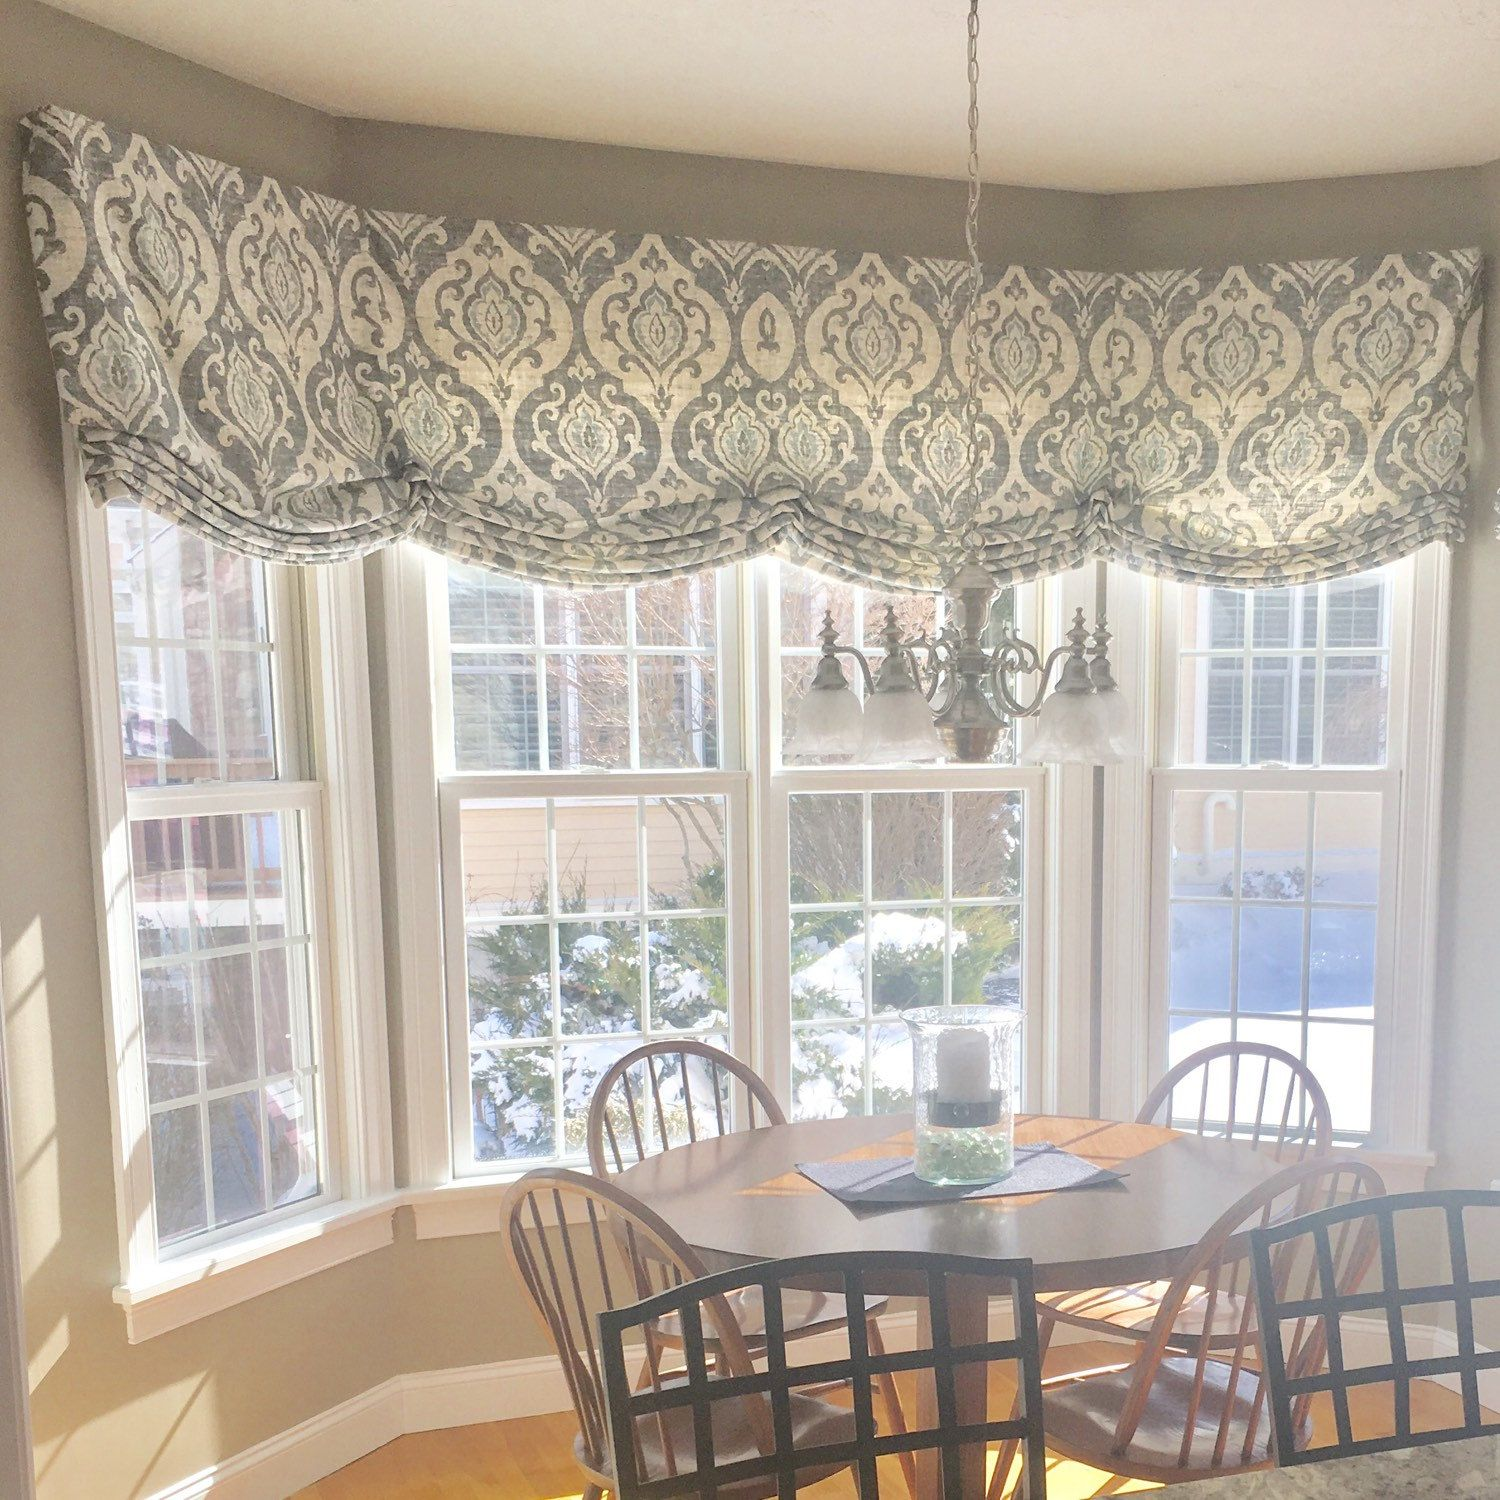 Relaxed Roman Shades Window Treatments Living Room Roman Shades Living Room Kitchen Window Treatments #valances #for #bay #windows #in #living #room